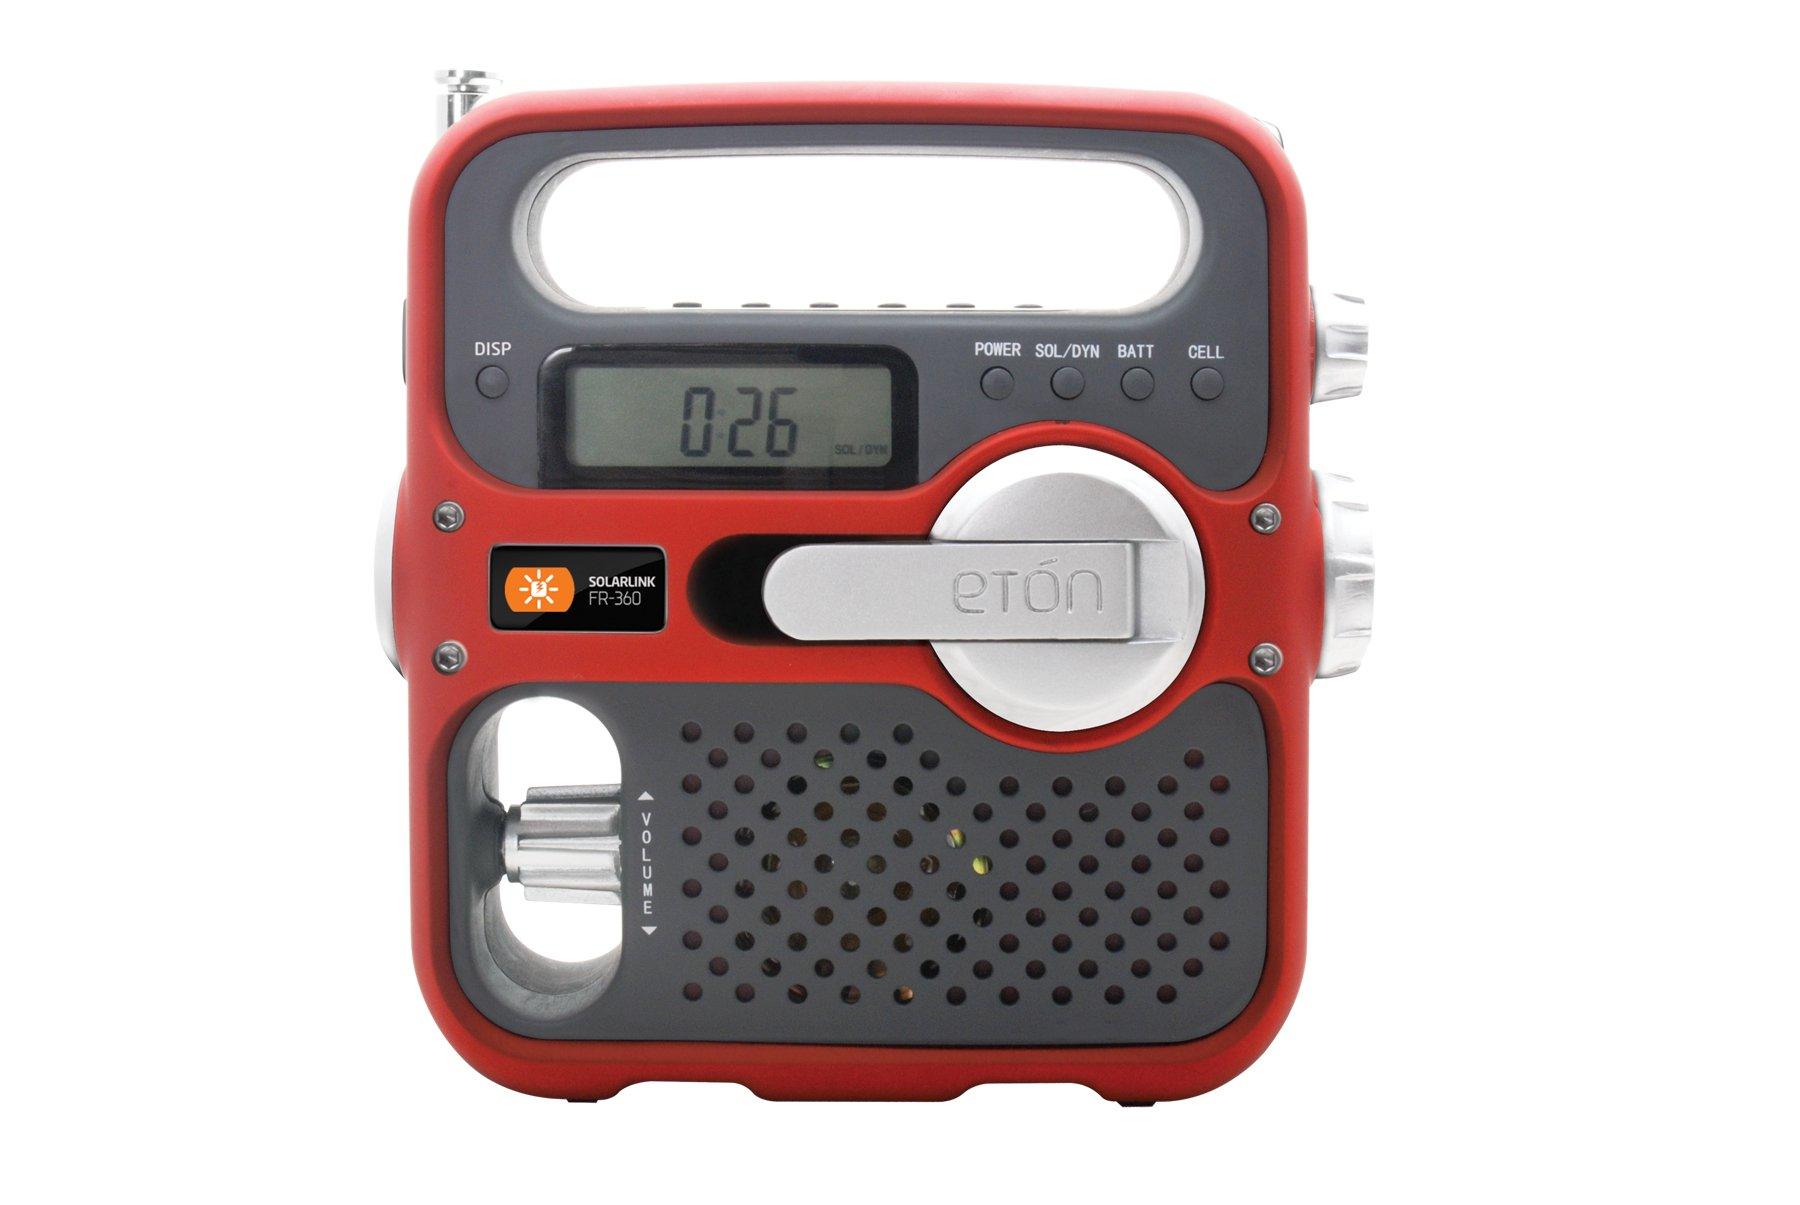 Eton Solarlink FR360 Self-Powered AM/FM/NOAA Radio with Solar Power, Flashlight, and Cell Phone Charger (Red) by Eton